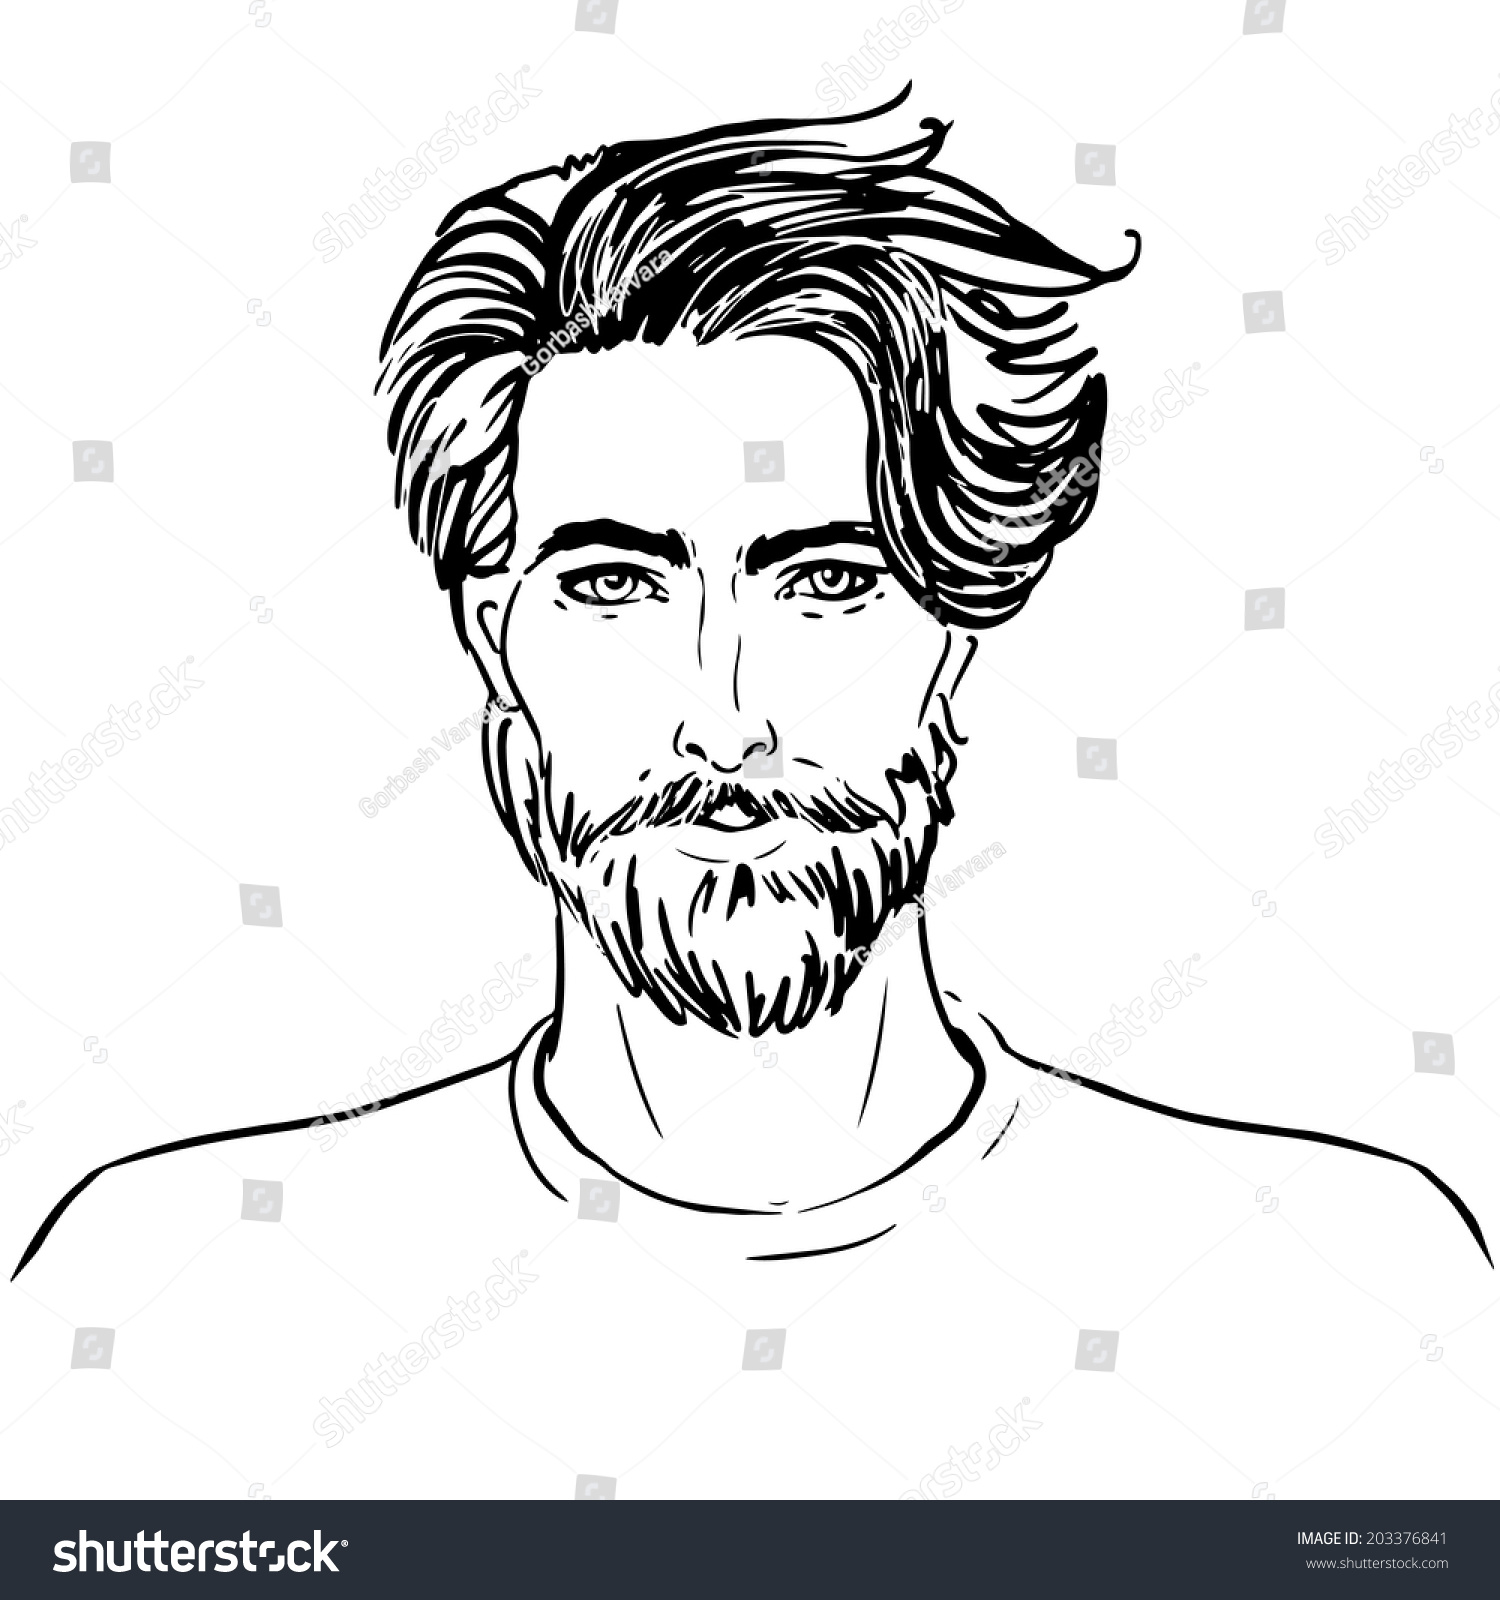 Portrait of handsome man with beard sketch style illustration